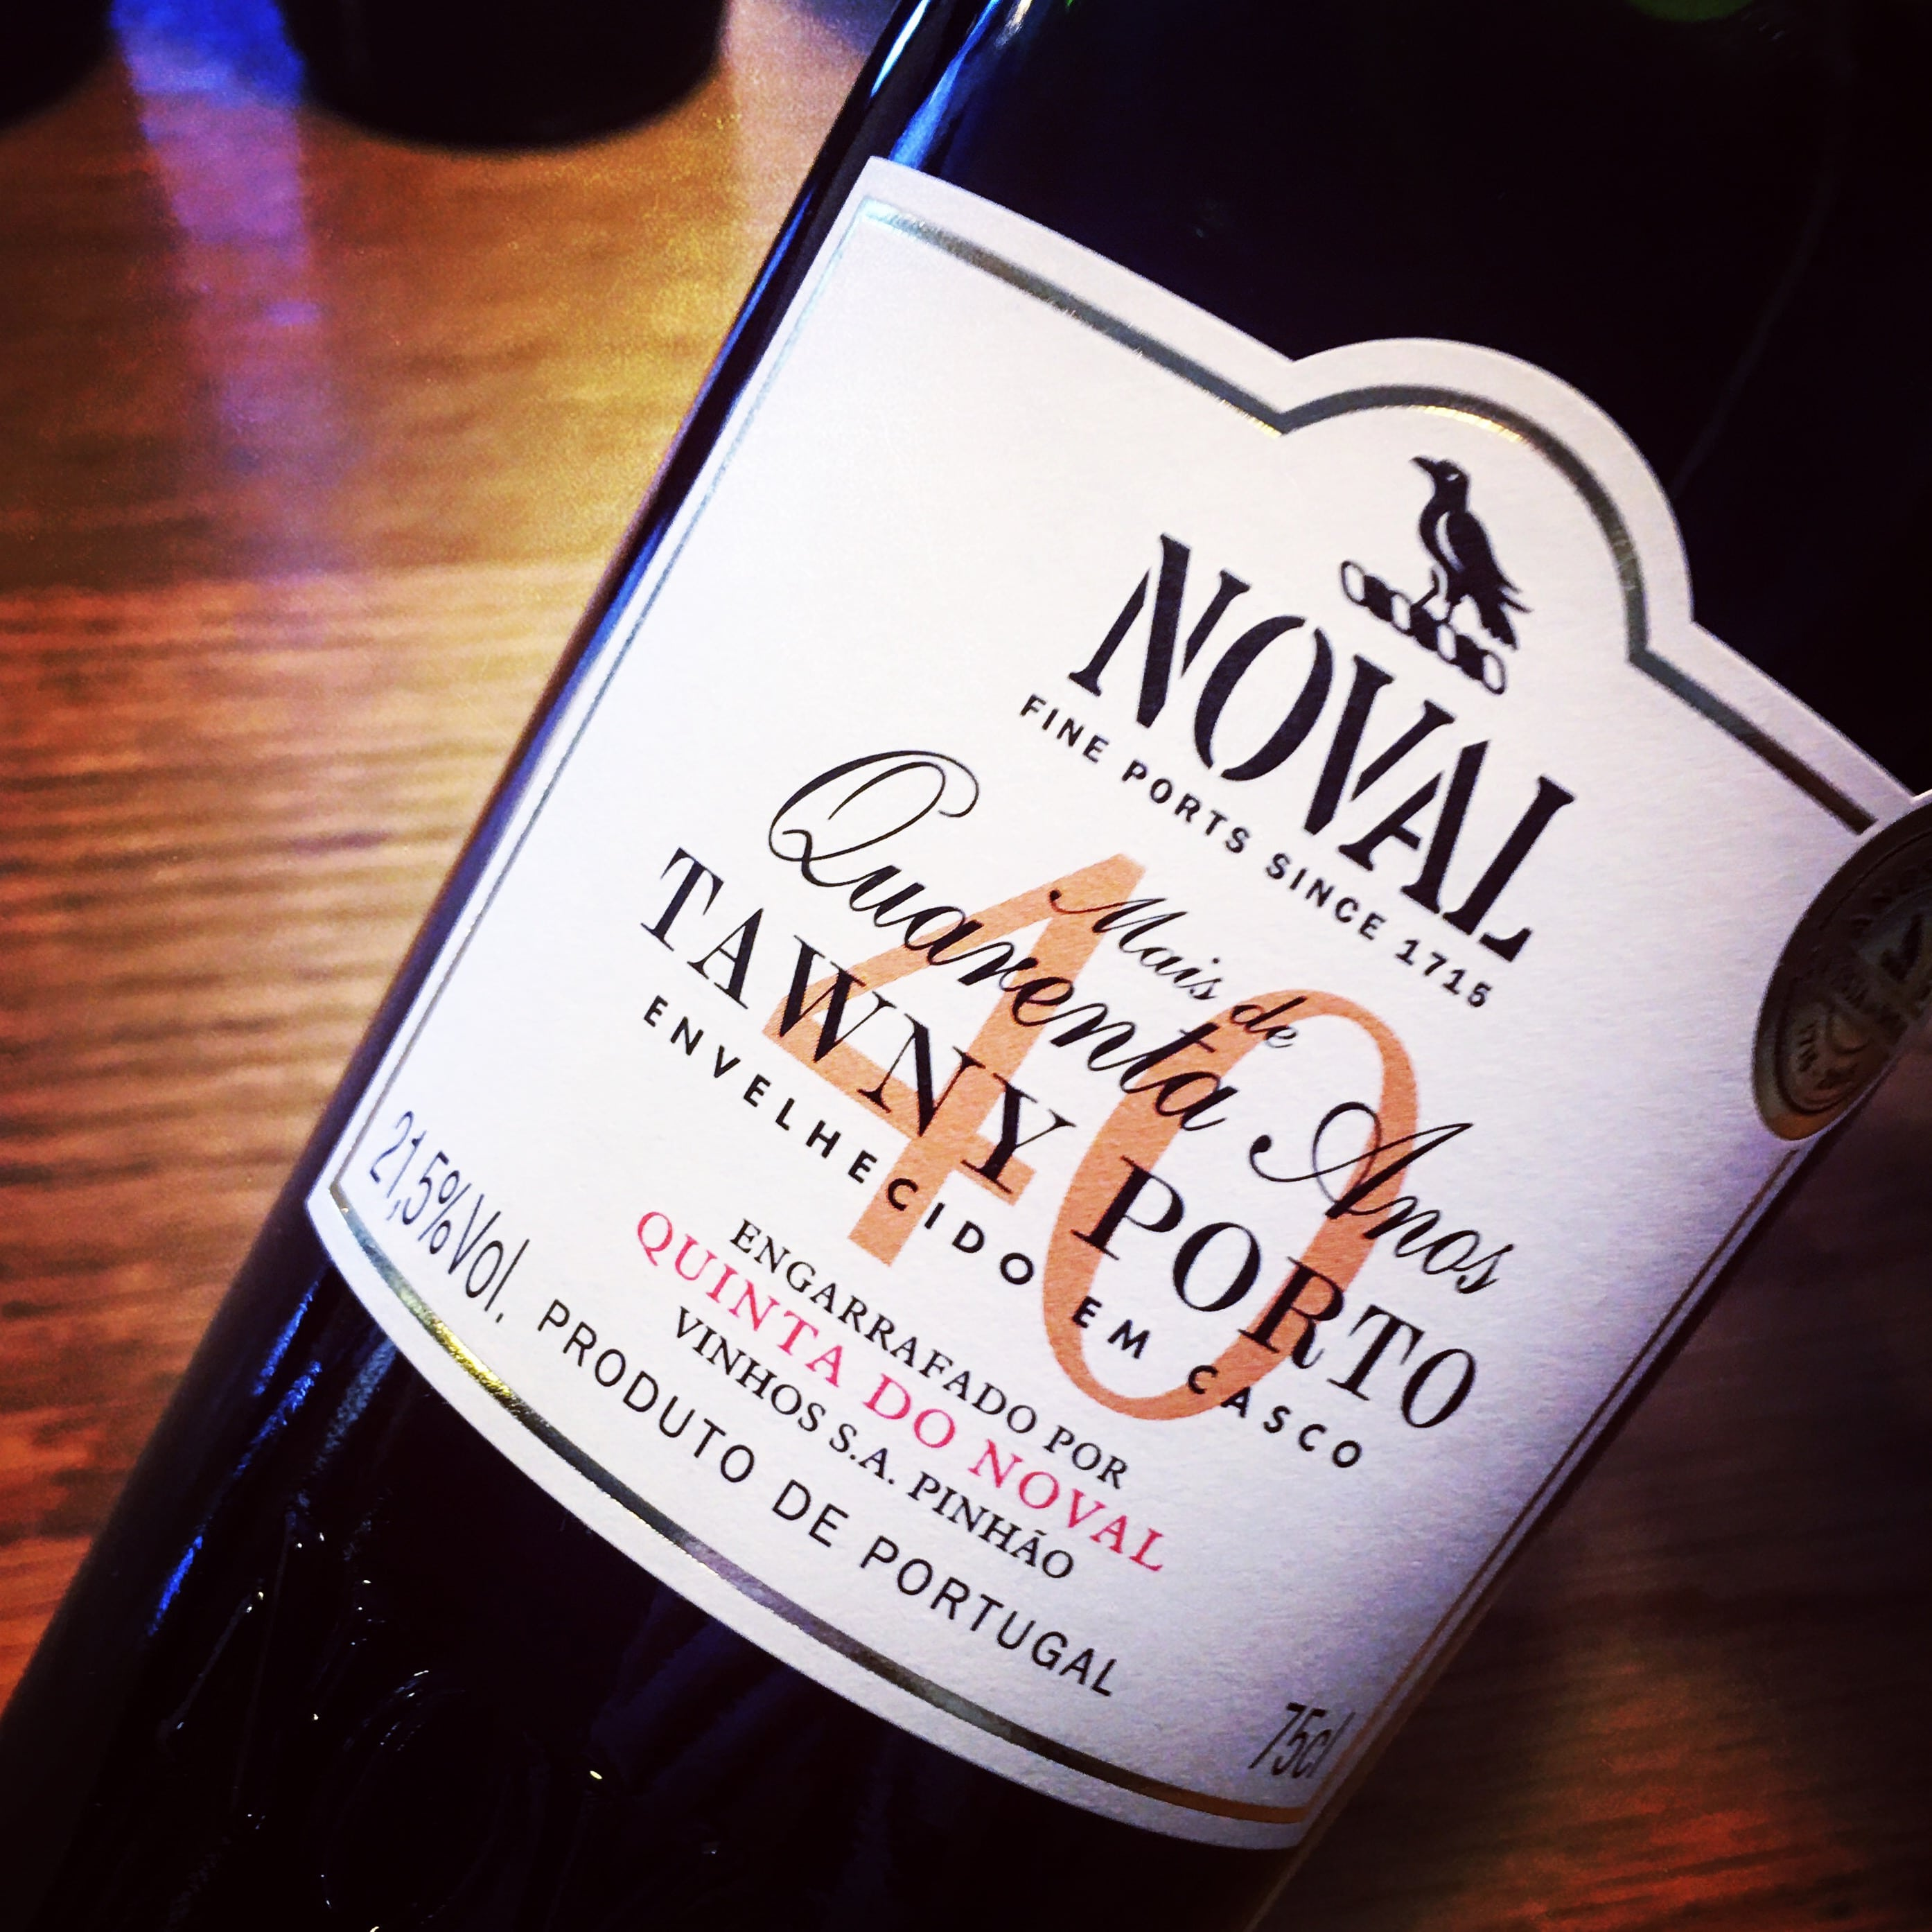 Quinta do Noval Quarenta Anos 40 Year Old Tawny